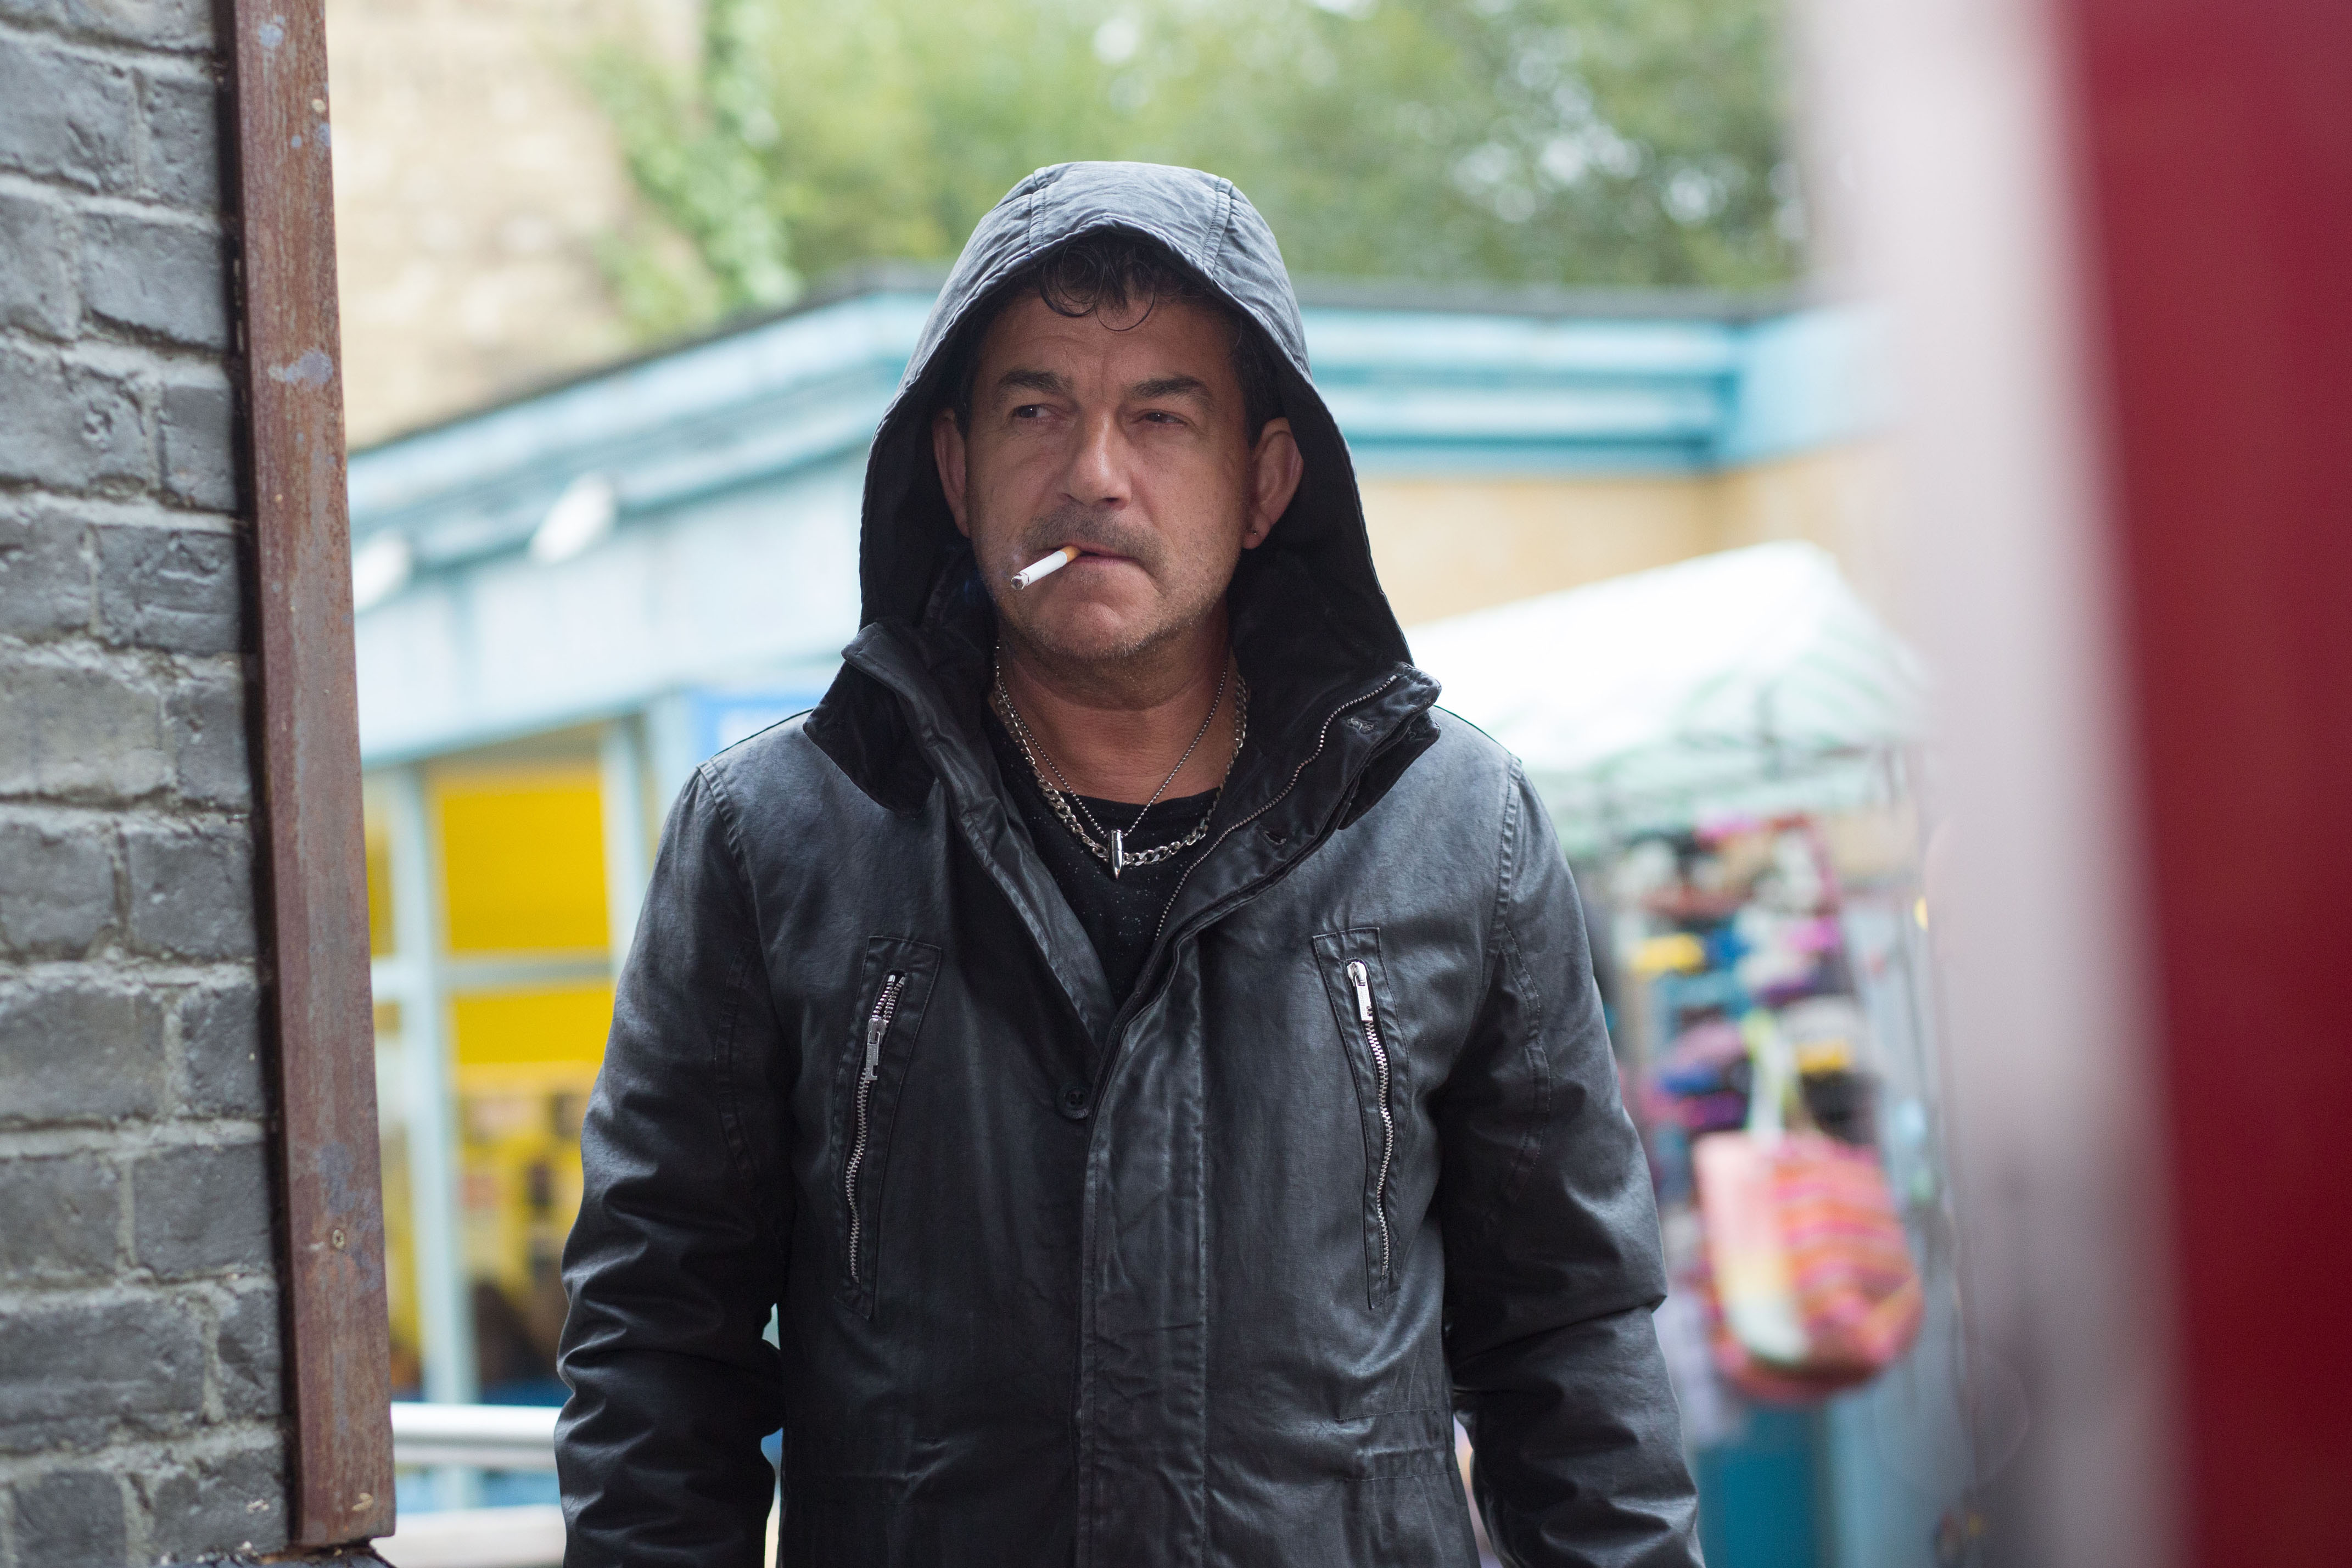 EastEnders spoiler pictures: Nick Cotton is back and wastes no time in giving a shocked Ronnie and Charlie an ultimatum